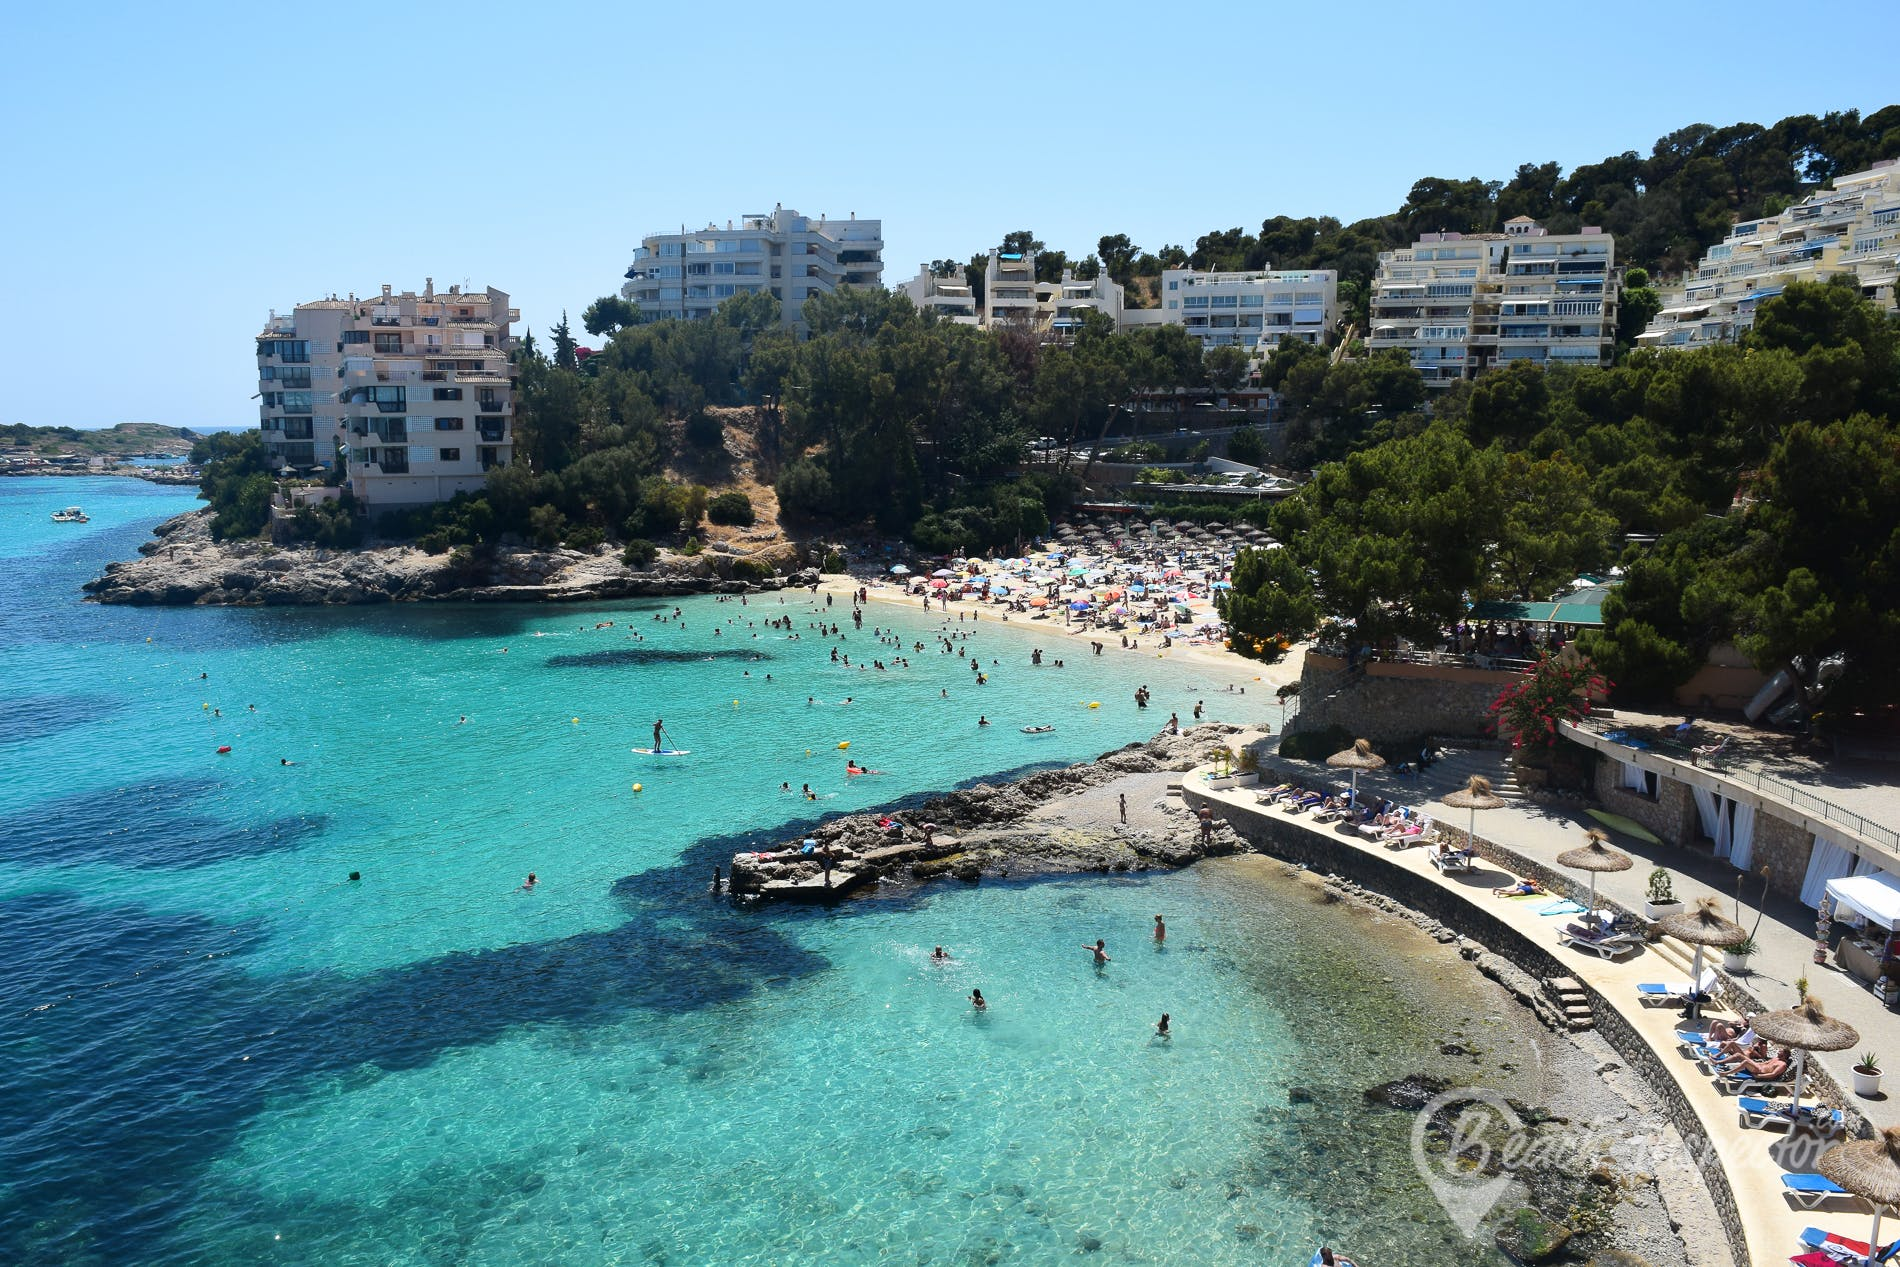 Beach Playa de Illetas, Majorca, Spain